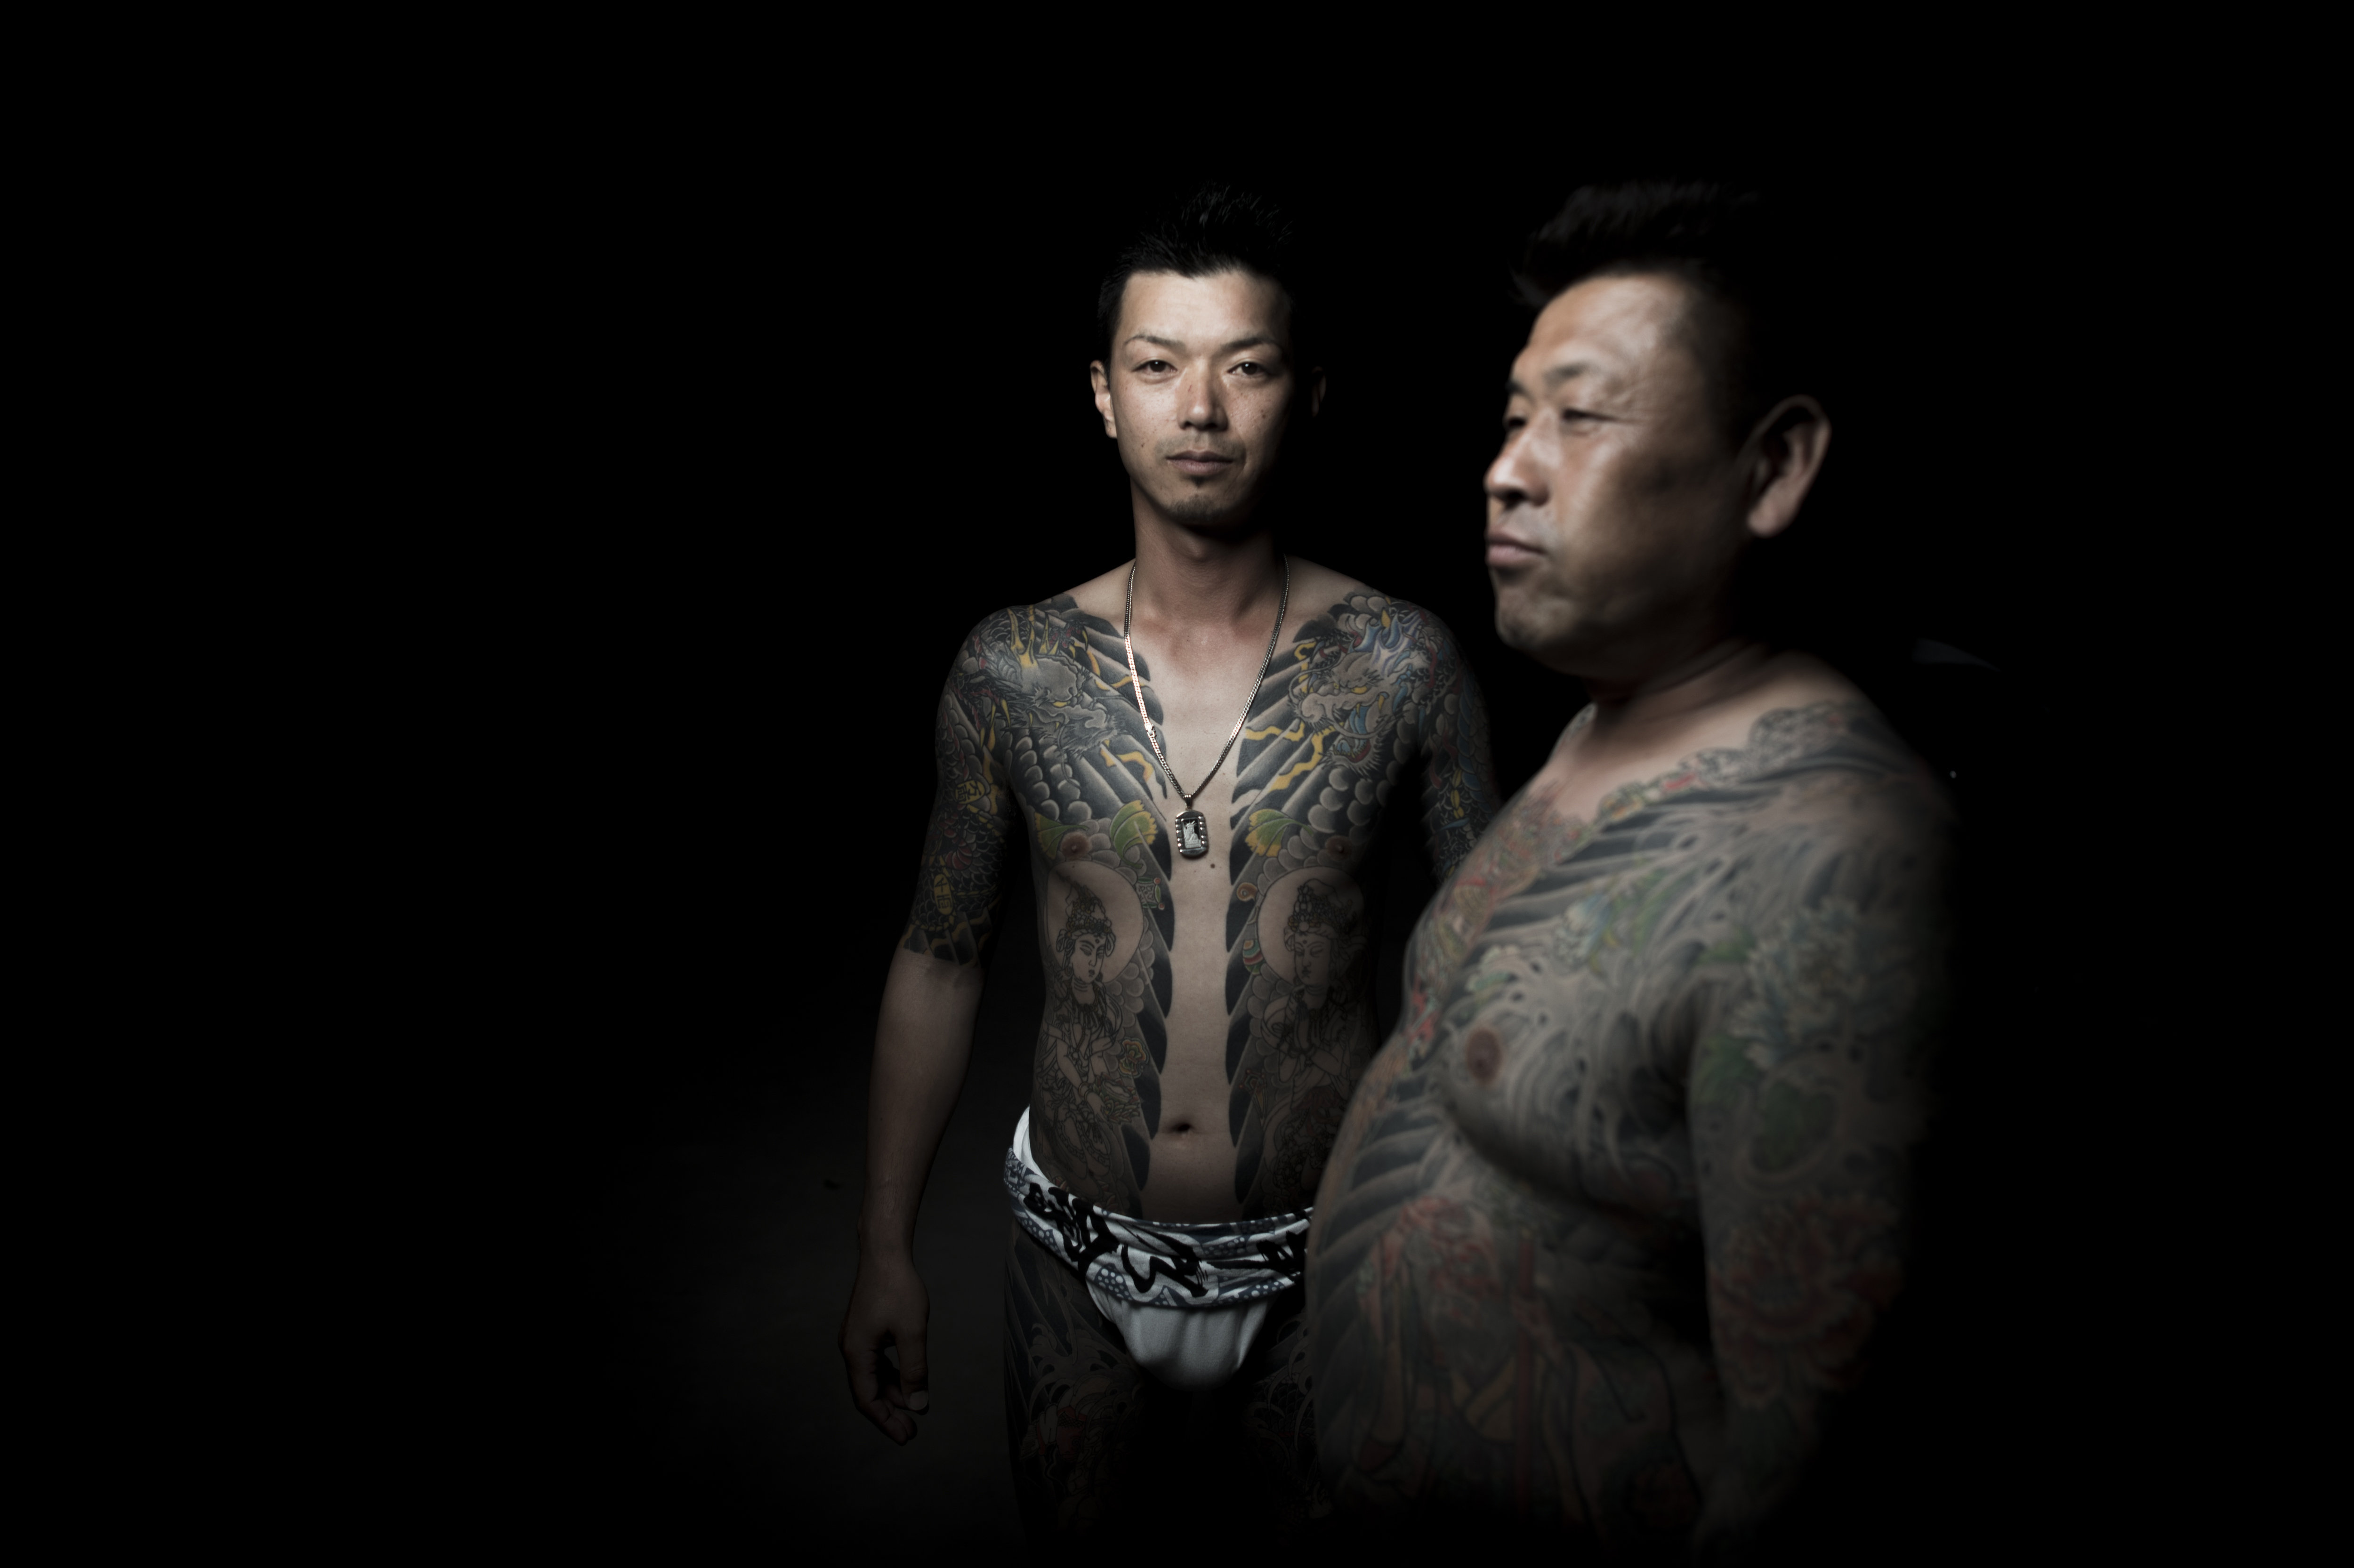 In this picture taken on May 20, 2017, men pose for photographs showing their Irezumi Japanese traditional tattoos related to the Yakuza's universe, during the Sanja Matsuri festival in Tokyo